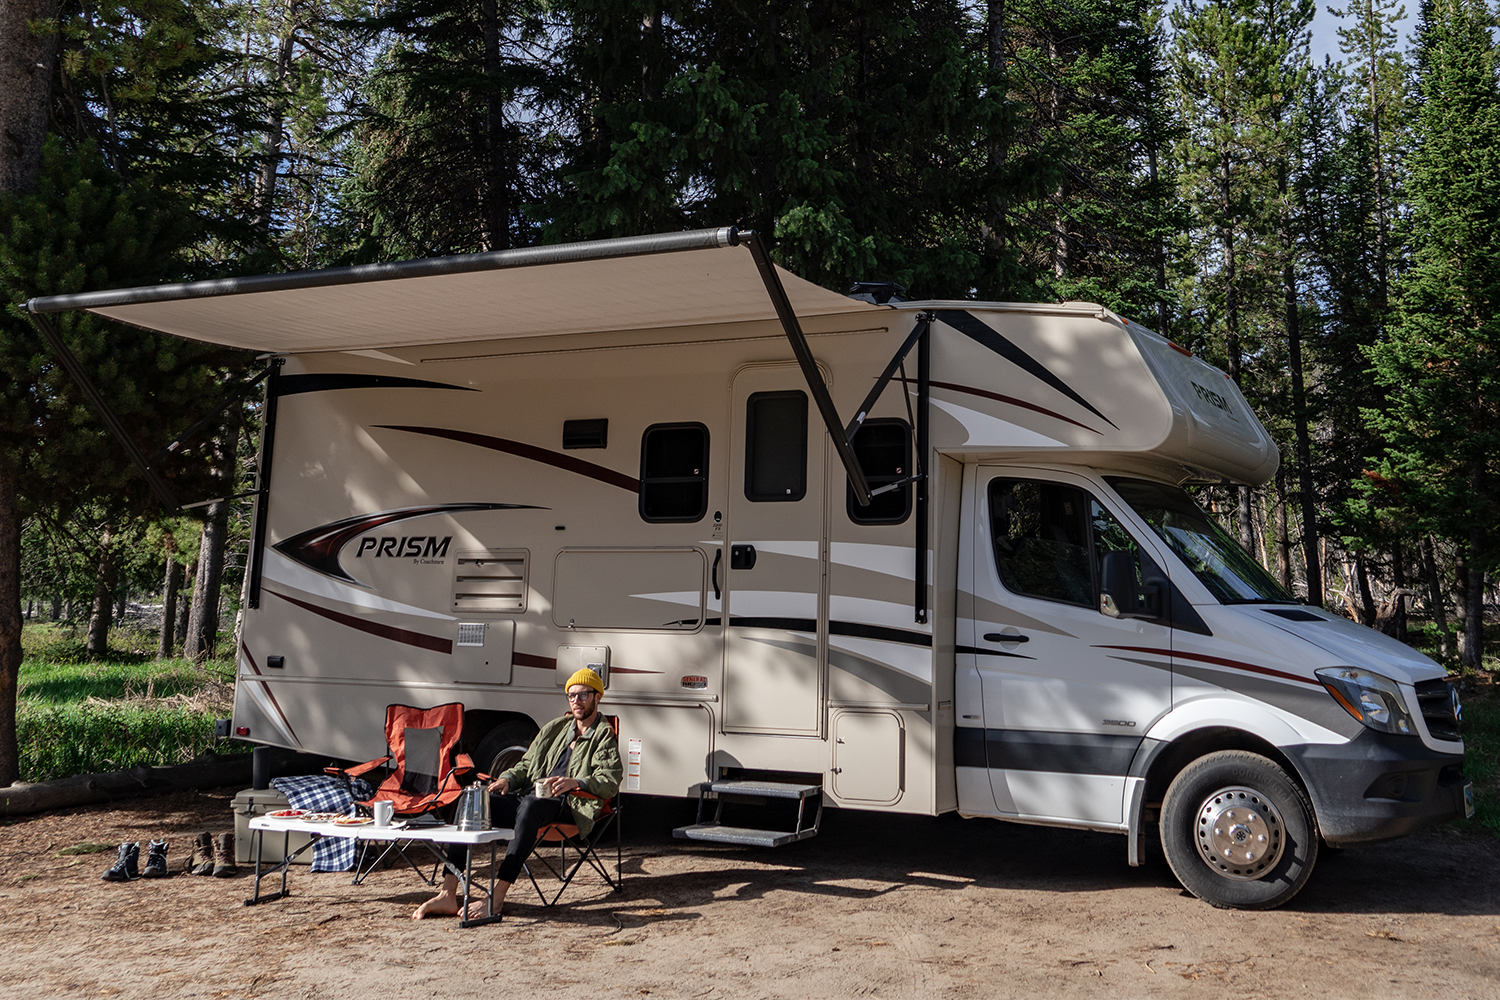 Vacationing in an RV